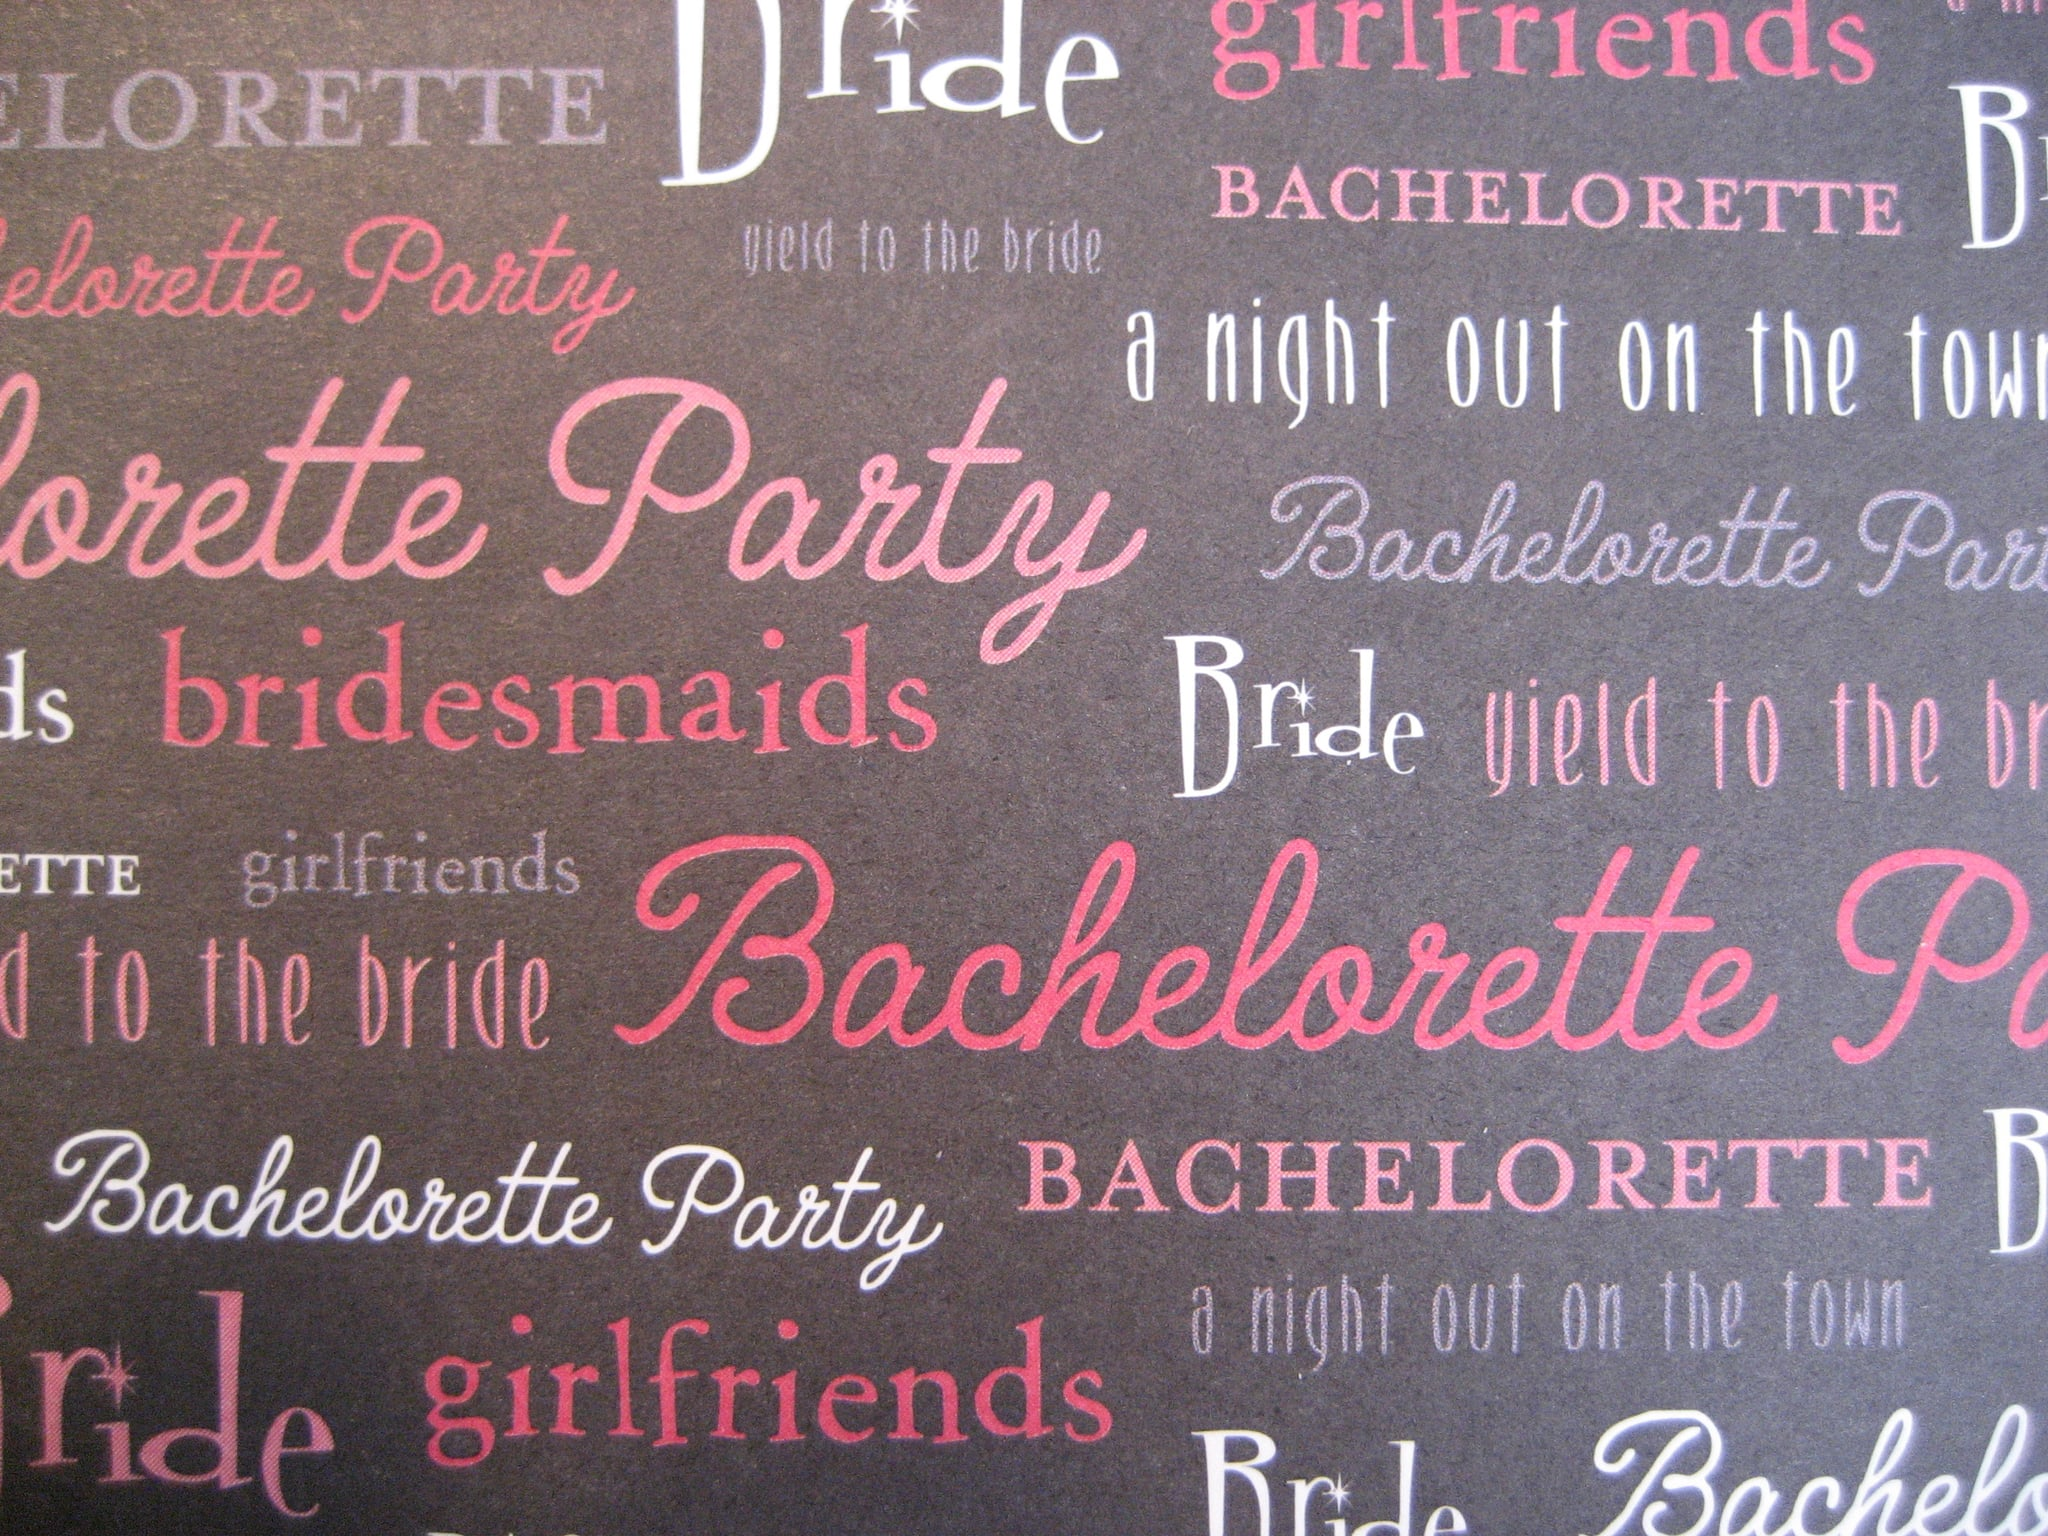 Come Party With Me: Bachelorette Party - Invites